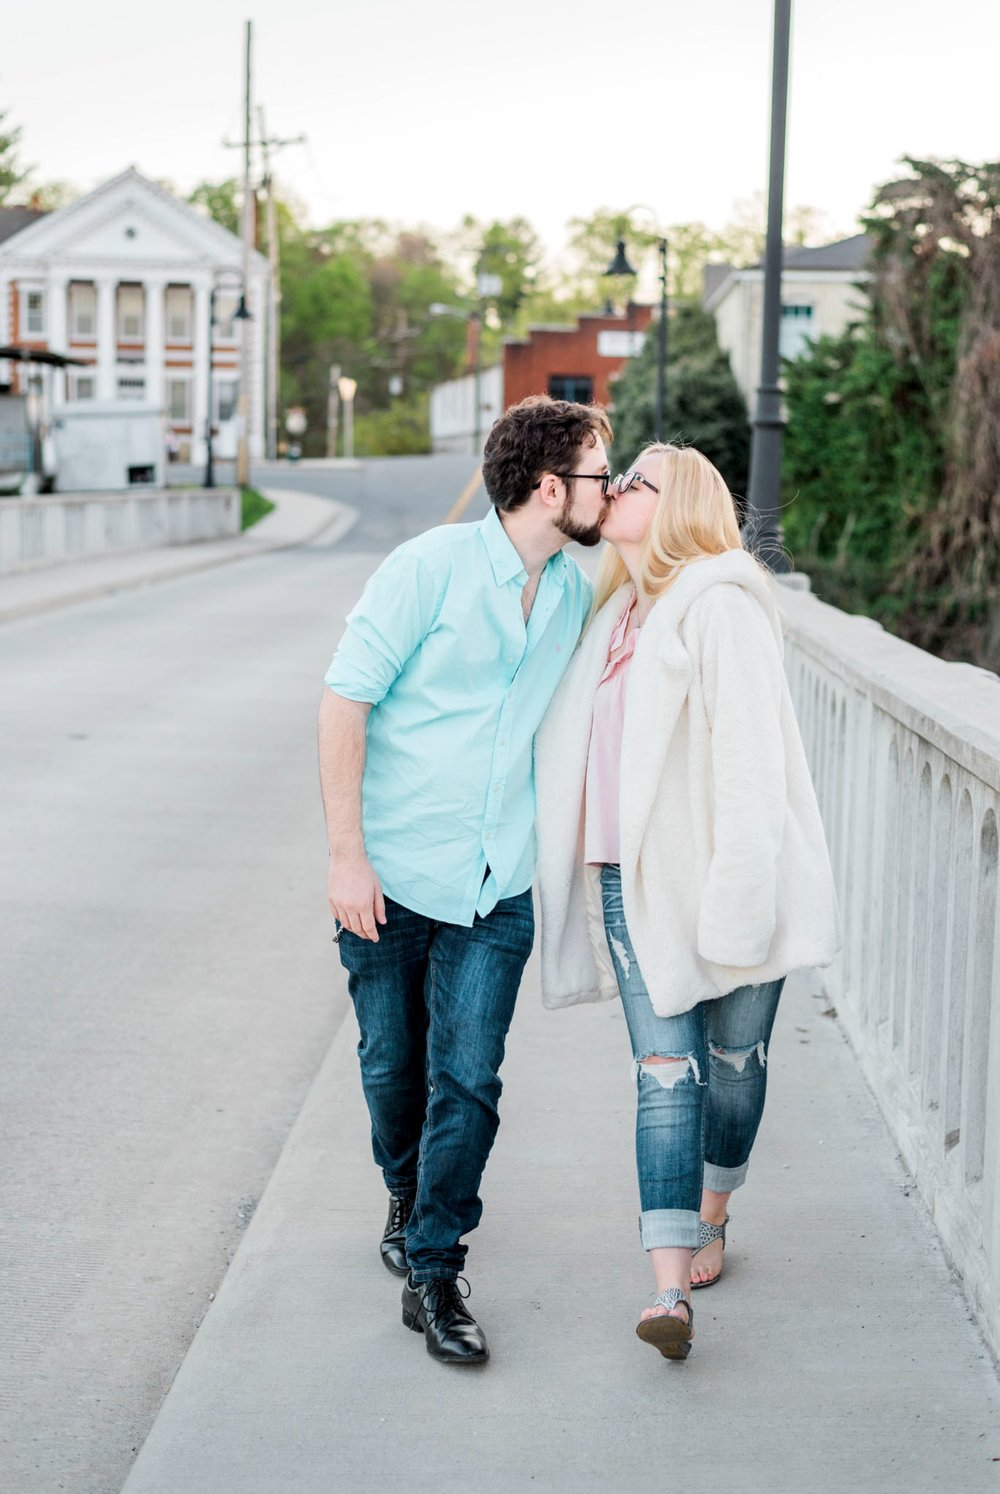 LaunceTarah_VirginiaWeddingPhotographer_EngagementSession_LynchburgVA_DowntownLynchburg_SpringEngagement 25.jpg